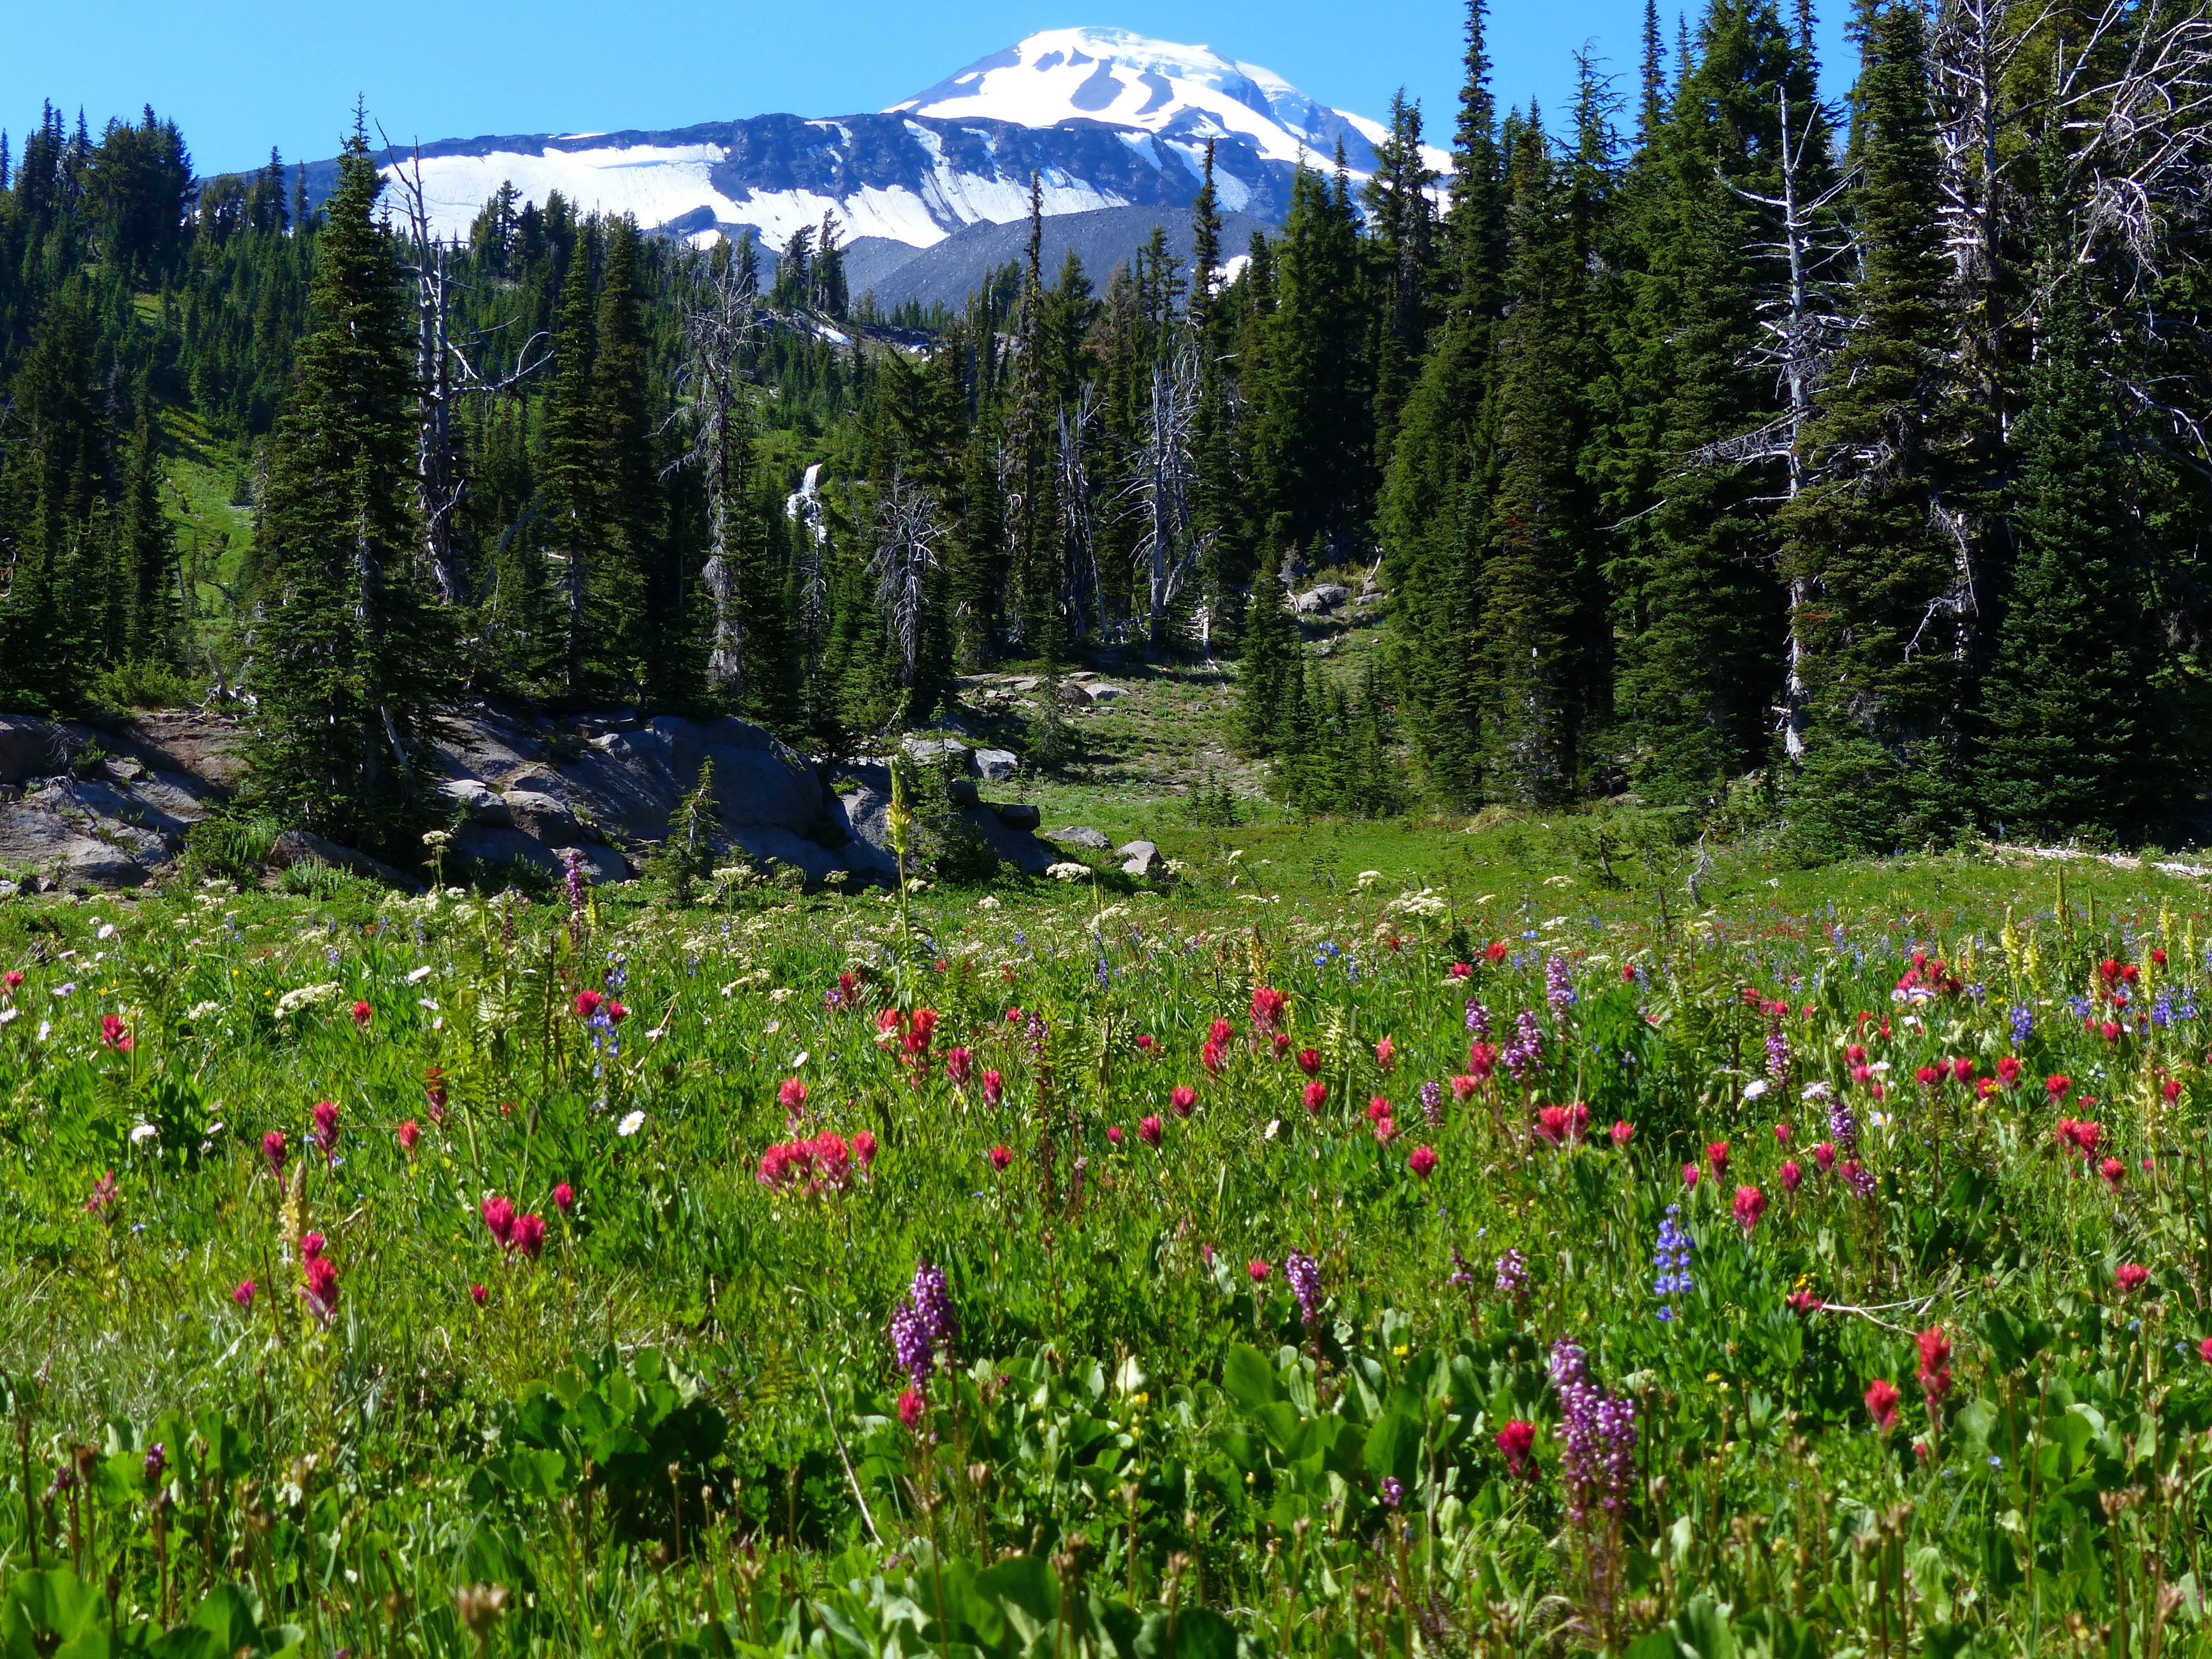 BIRD CREEK MEADOWS HIKE